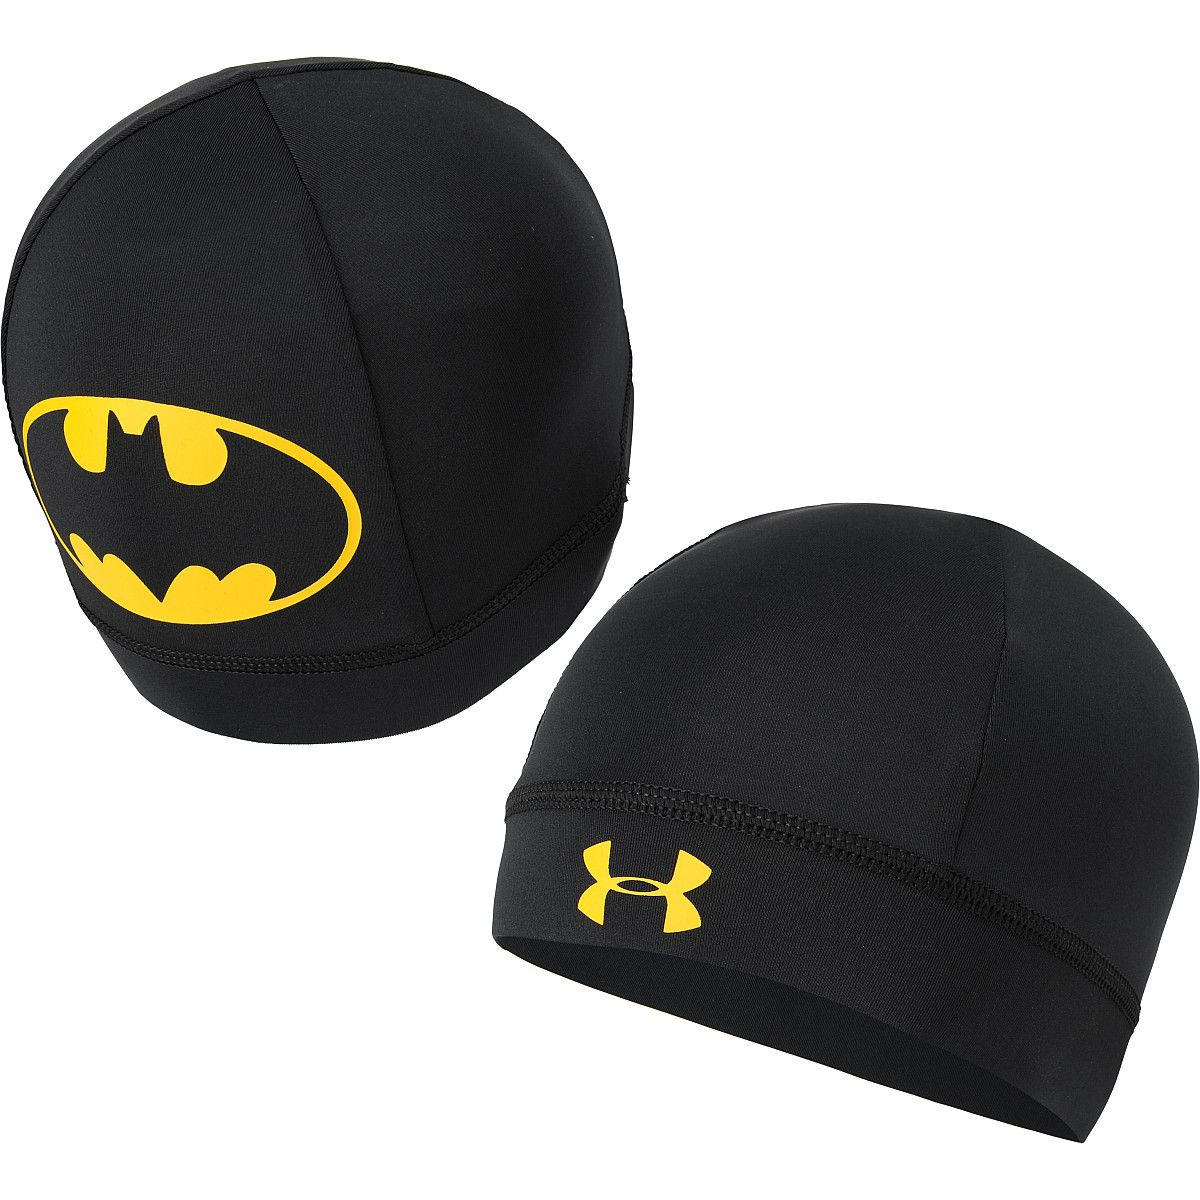 eacf07d2a04e5 UNDER ARMOUR Men s Alter Ego Batman Skull Cap - SportsAuthority.com ...